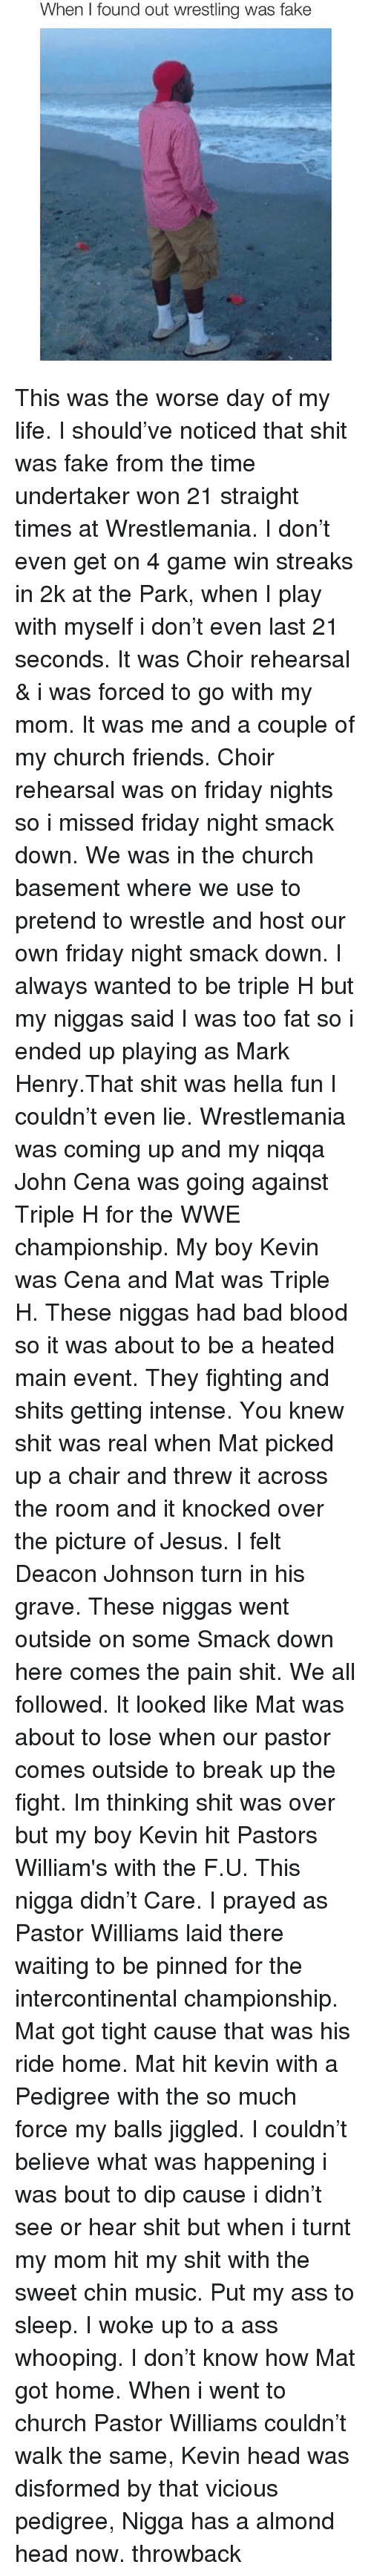 Bad Blood, John Cena, and Memes: When I found out wrestling was fake This was the worse day of my life. I should've noticed that shit was fake from the time undertaker won 21 straight times at Wrestlemania. I don't even get on 4 game win streaks in 2k at the Park, when I play with myself i don't even last 21 seconds. It was Choir rehearsal & i was forced to go with my mom. It was me and a couple of my church friends. Choir rehearsal was on friday nights so i missed friday night smack down. We was in the church basement where we use to pretend to wrestle and host our own friday night smack down. I always wanted to be triple H but my niggas said I was too fat so i ended up playing as Mark Henry.That shit was hella fun I couldn't even lie. Wrestlemania was coming up and my niqqa John Cena was going against Triple H for the WWE championship. My boy Kevin was Cena and Mat was Triple H. These niggas had bad blood so it was about to be a heated main event. They fighting and shits getting intense. You knew shit was real when Mat picked up a chair and threw it across the room and it knocked over the picture of Jesus. I felt Deacon Johnson turn in his grave. These niggas went outside on some Smack down here comes the pain shit. We all followed. It looked like Mat was about to lose when our pastor comes outside to break up the fight. Im thinking shit was over but my boy Kevin hit Pastors William's with the F.U. This nigga didn't Care. I prayed as Pastor Williams laid there waiting to be pinned for the intercontinental championship. Mat got tight cause that was his ride home. Mat hit kevin with a Pedigree with the so much force my balls jiggled. I couldn't believe what was happening i was bout to dip cause i didn't see or hear shit but when i turnt my mom hit my shit with the sweet chin music. Put my ass to sleep. I woke up to a ass whooping. I don't know how Mat got home. When i went to church Pastor Williams couldn't walk the same, Kevin head was disformed by that vicious pedigree, Nigga has a almond head now. throwback